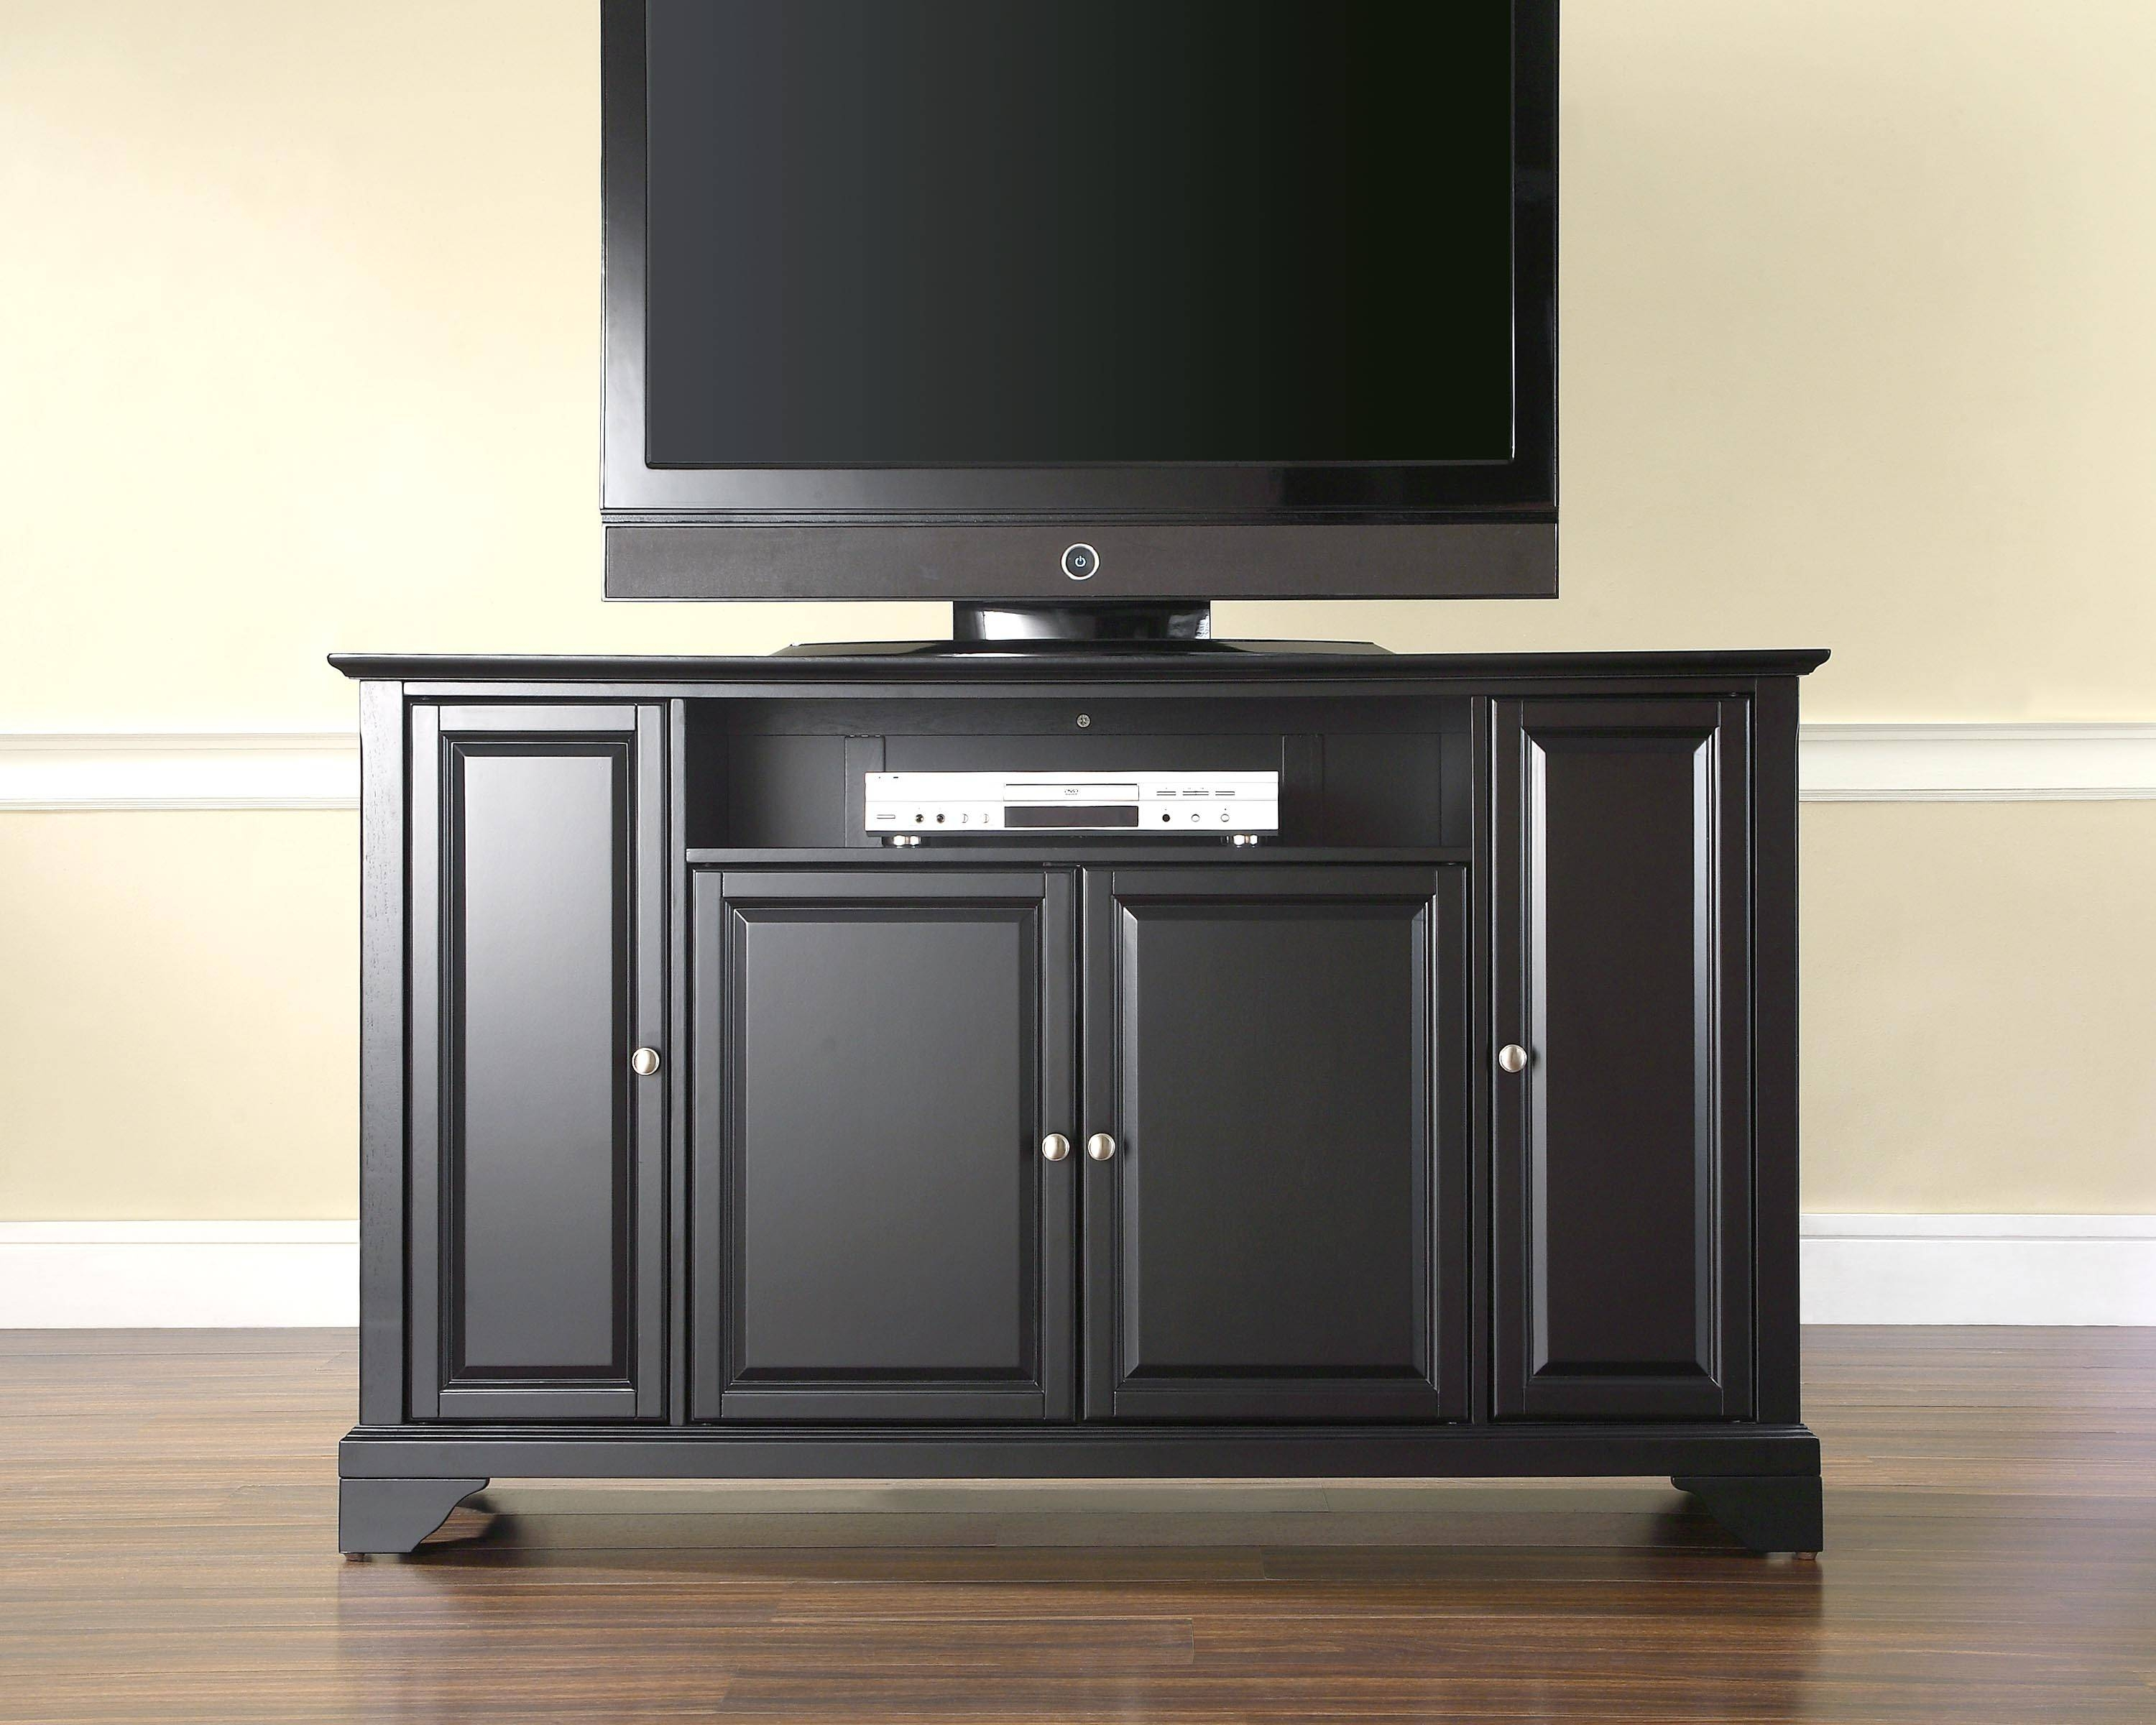 Furniture Eye Catching Wooden White Tv Stand With Tier Shelves intended for Cheap Wood Tv Stands (Image 5 of 15)